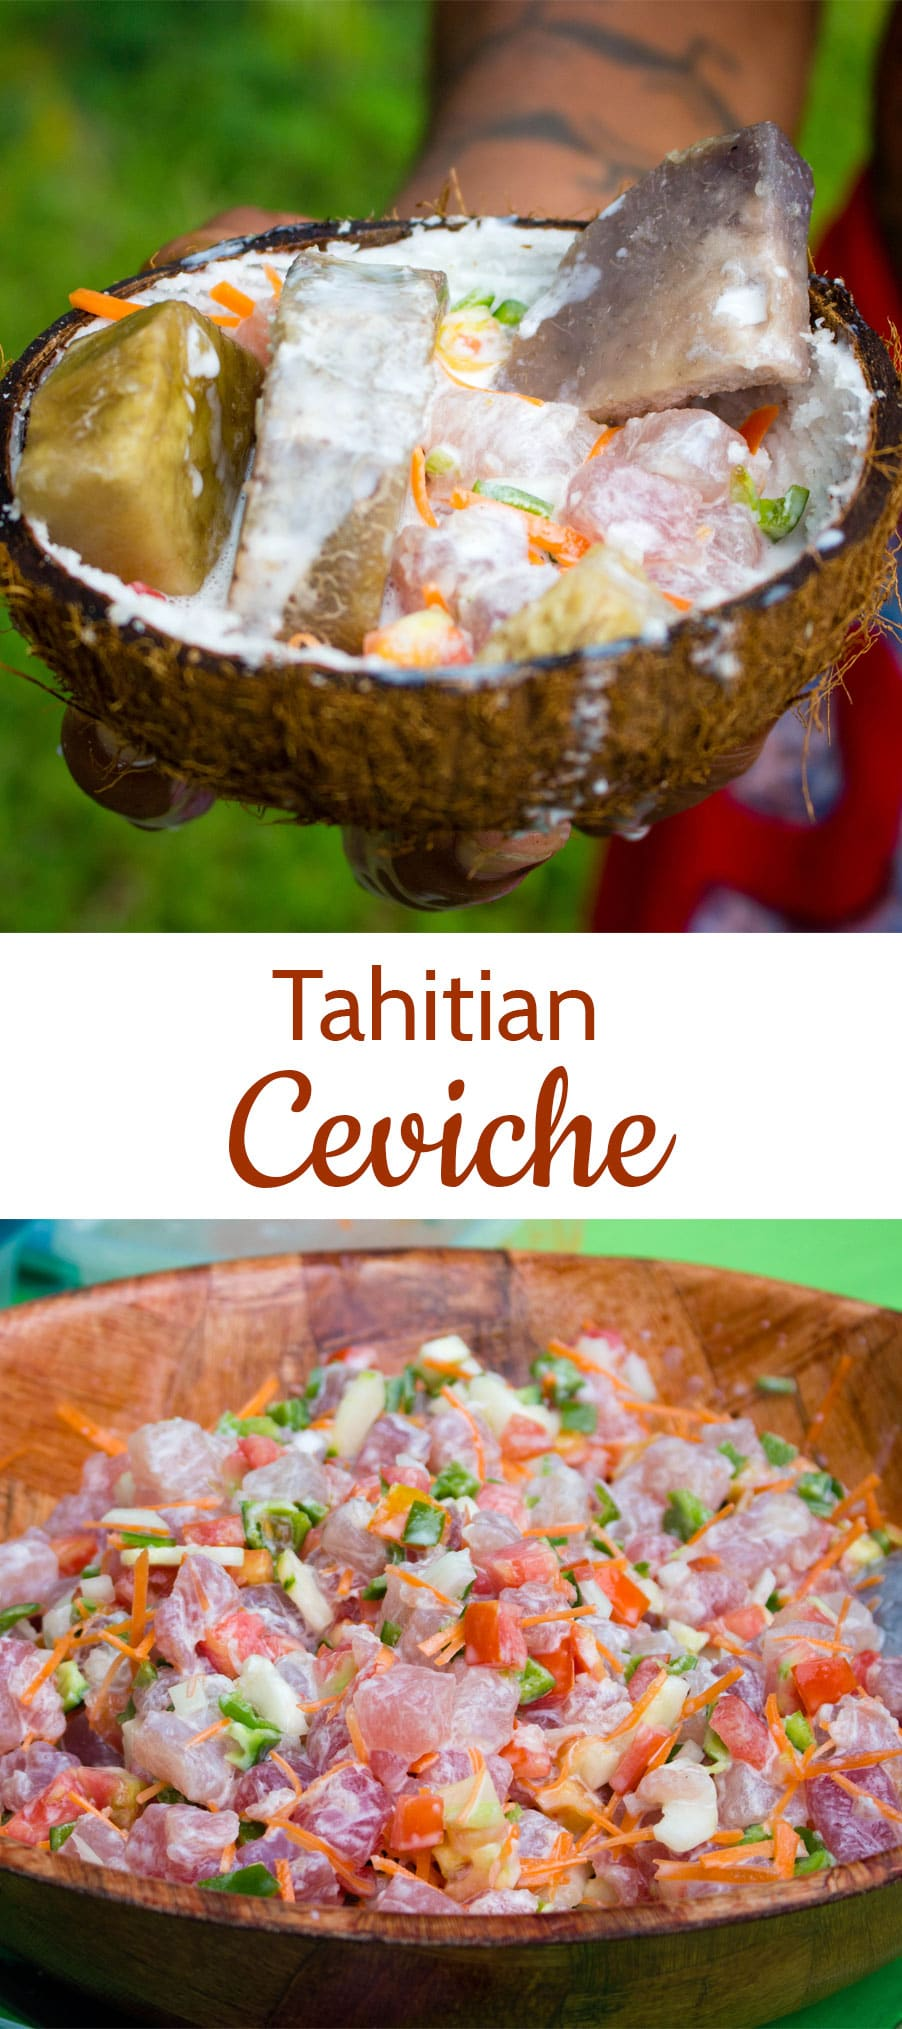 If you love sushi this simple-to-make Tahitian poisson cru, or Polynesian ceviche, will become a firm favourite. Quick, easy and adaptable, as well as being packed with vegetables.